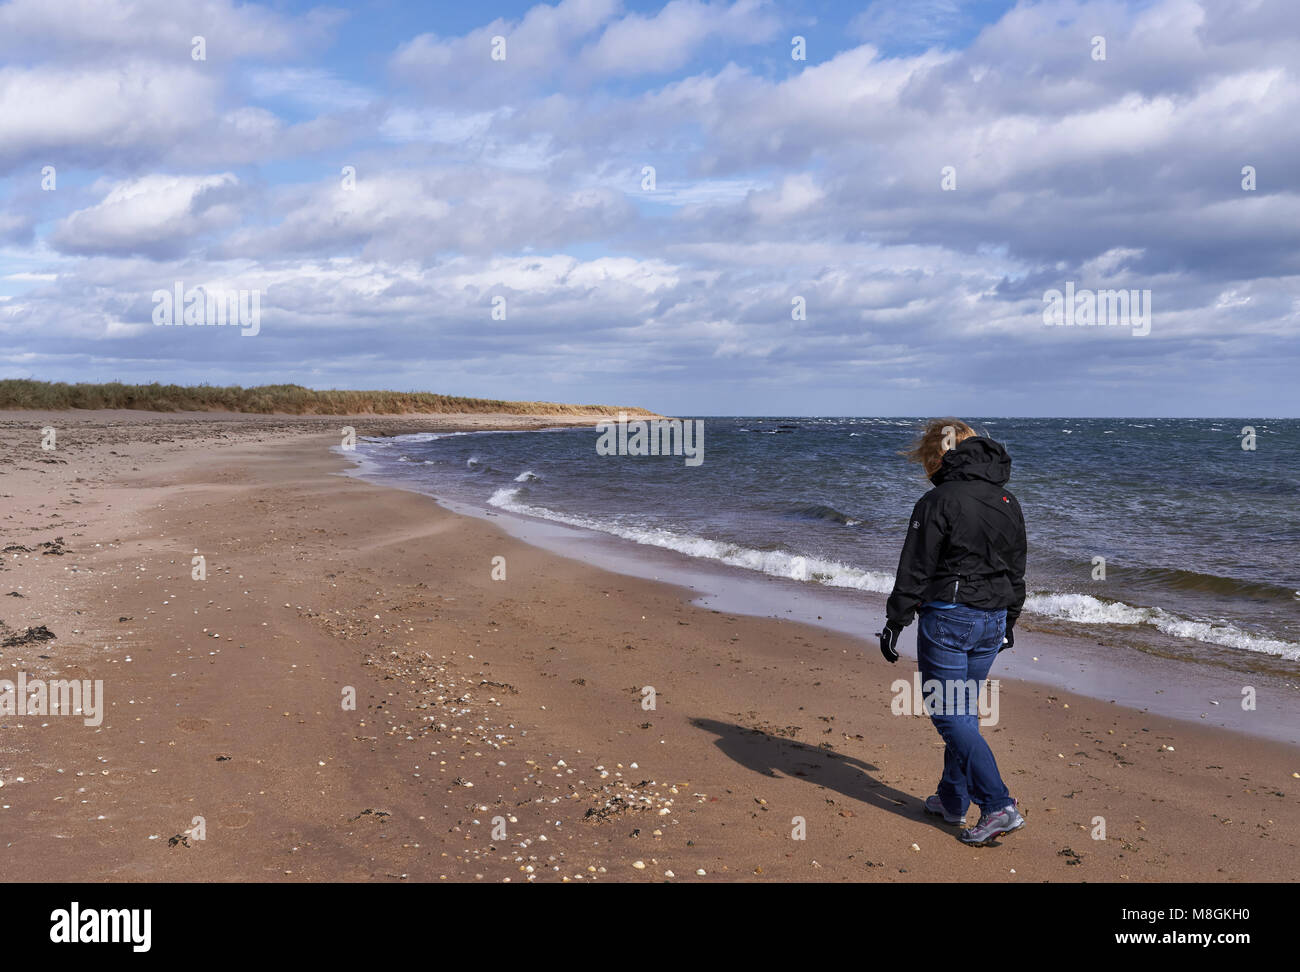 A Woman walking along Easthaven Beach in Angus, on a very windy and fresh day in April. Stock Photo